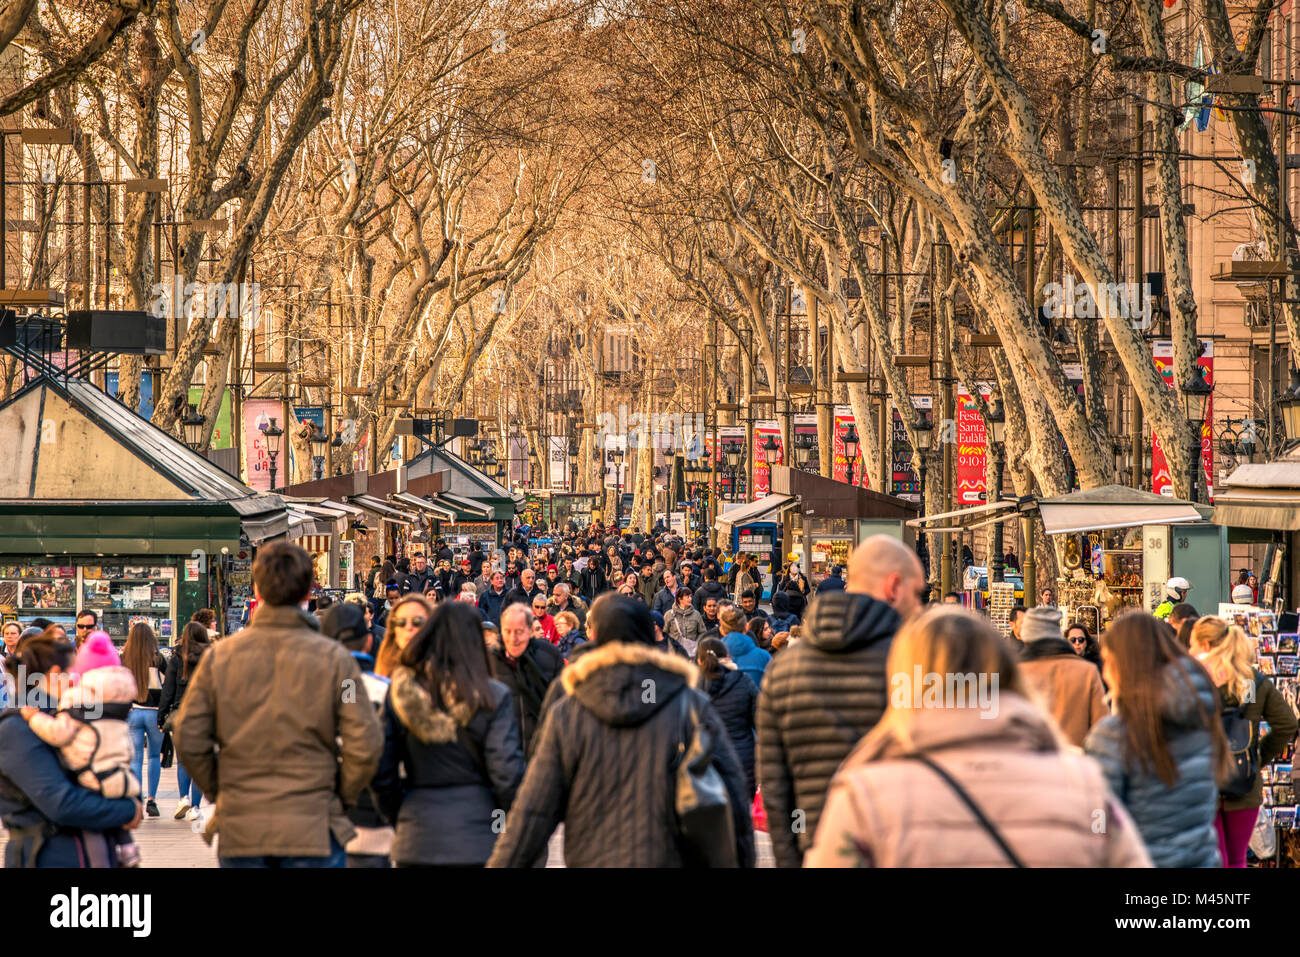 Tourists strolling on the famous Rambla pedestrian mall, Barcelona, Catalonia, Spain - Stock Image